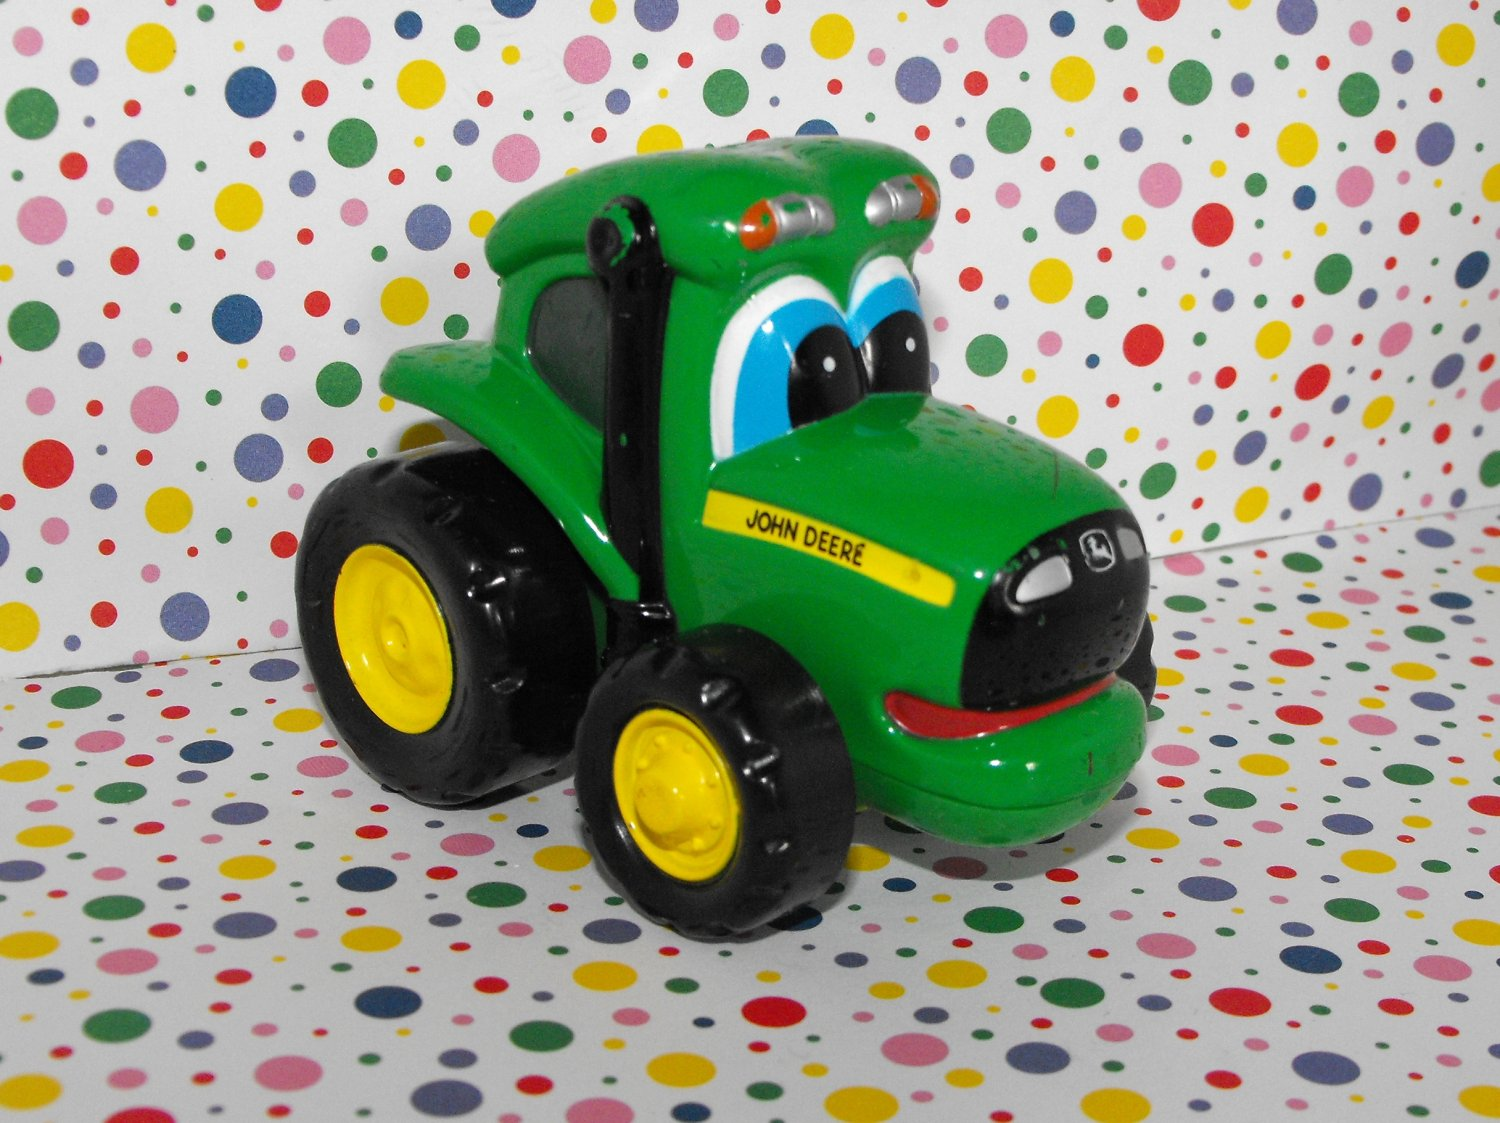 Ertl John Deere Johnny Tractor My First John Deere